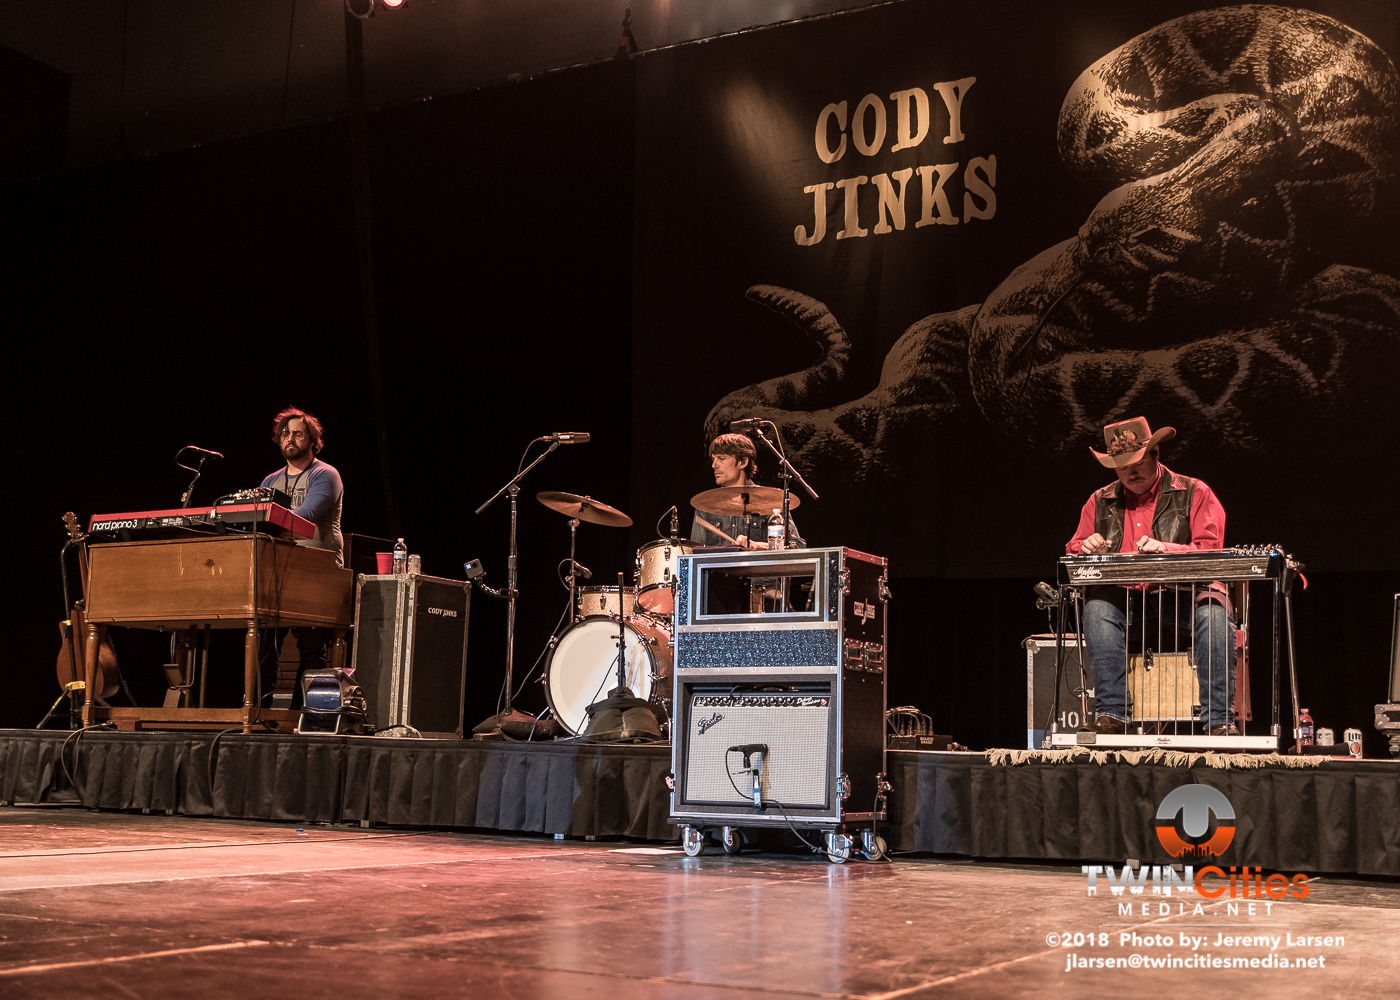 Cody-Jinks-Verizon-Grand-Hall-3-22-19-24